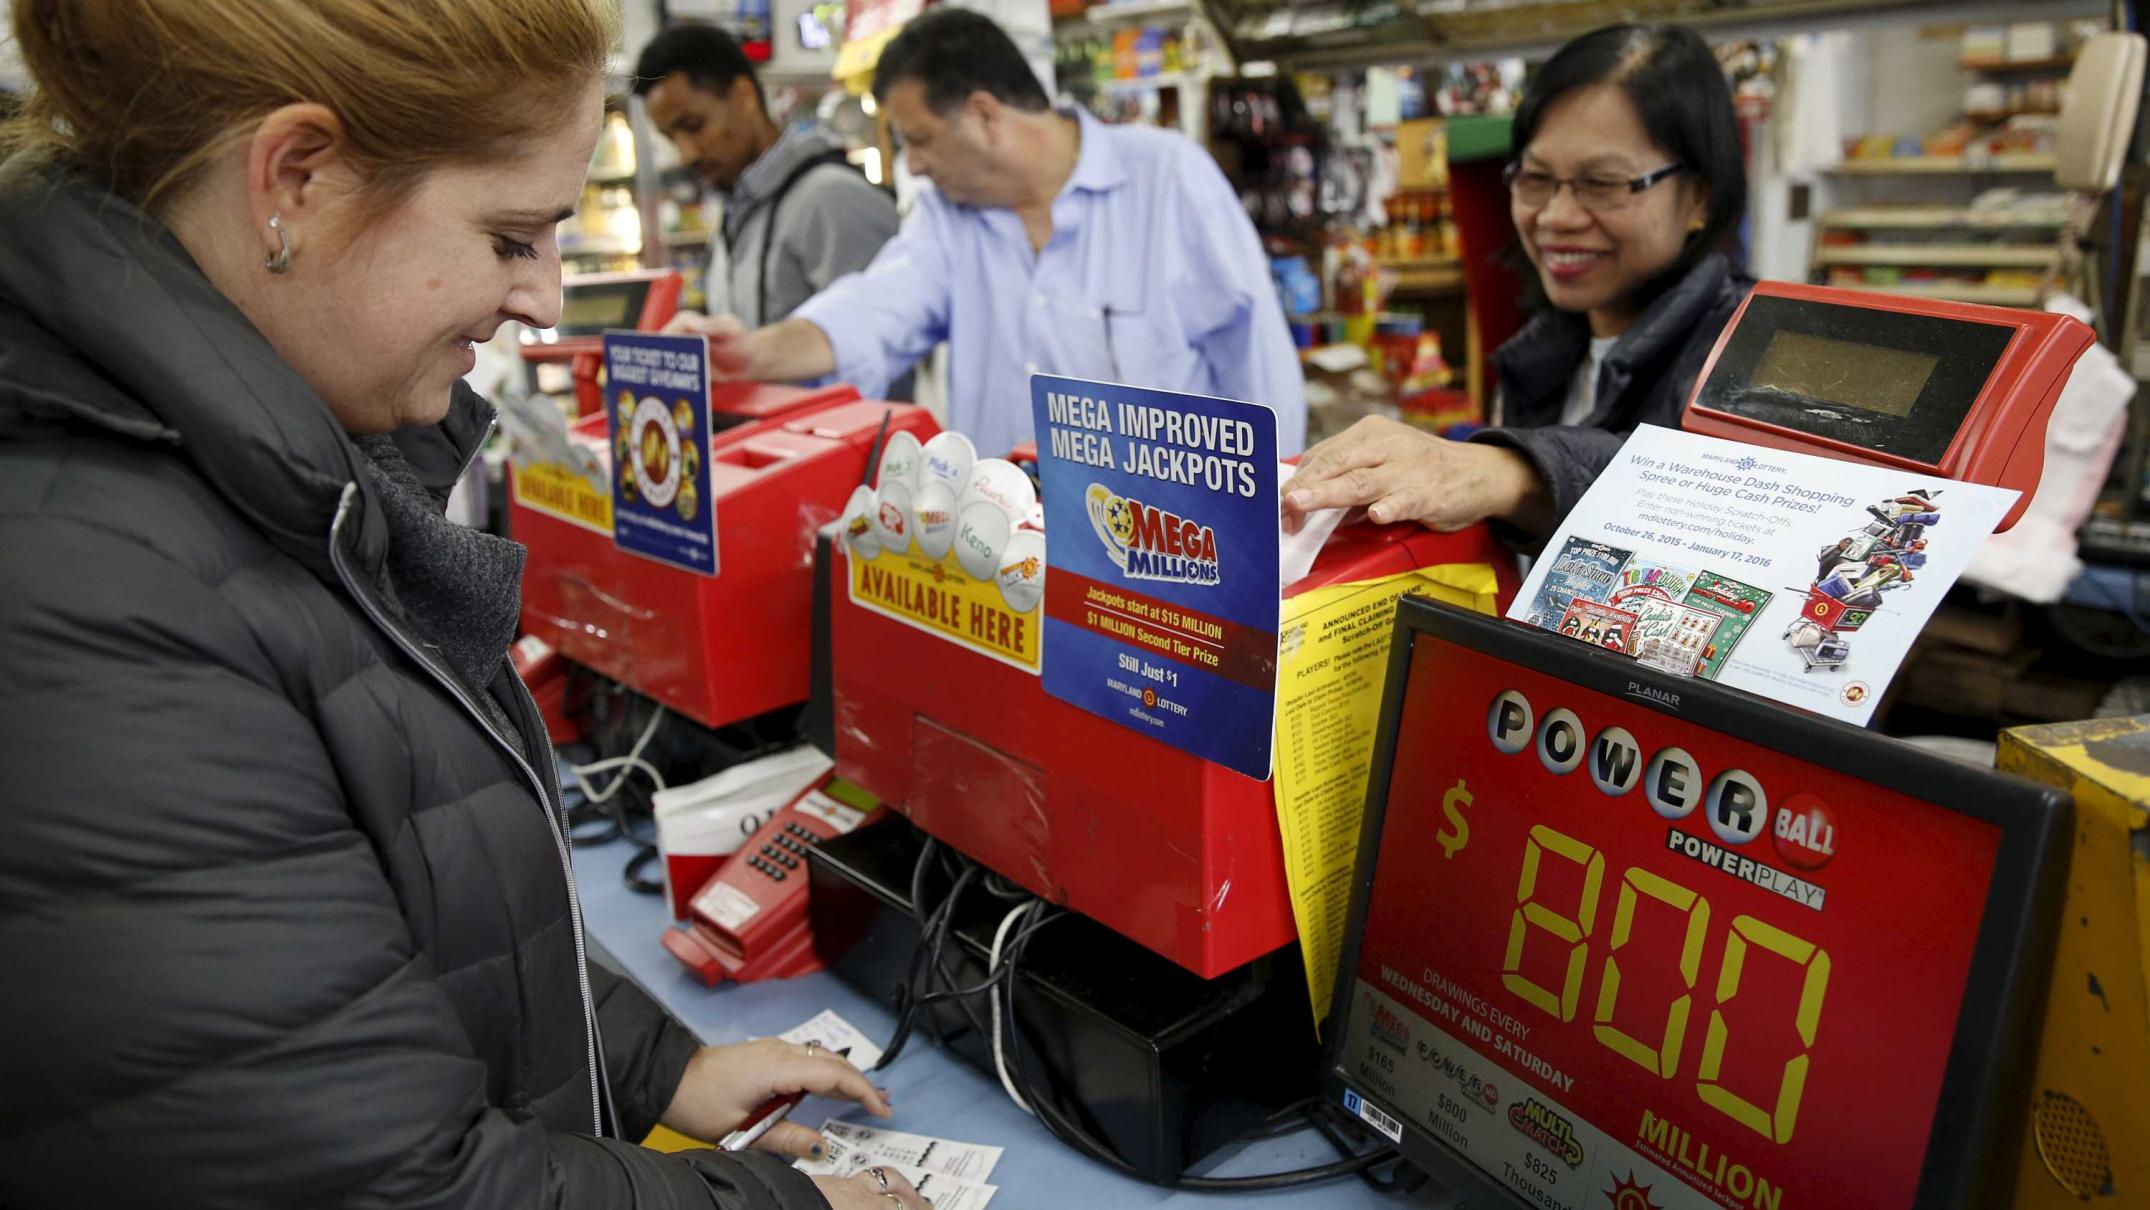 Play powerball online - lotto agent